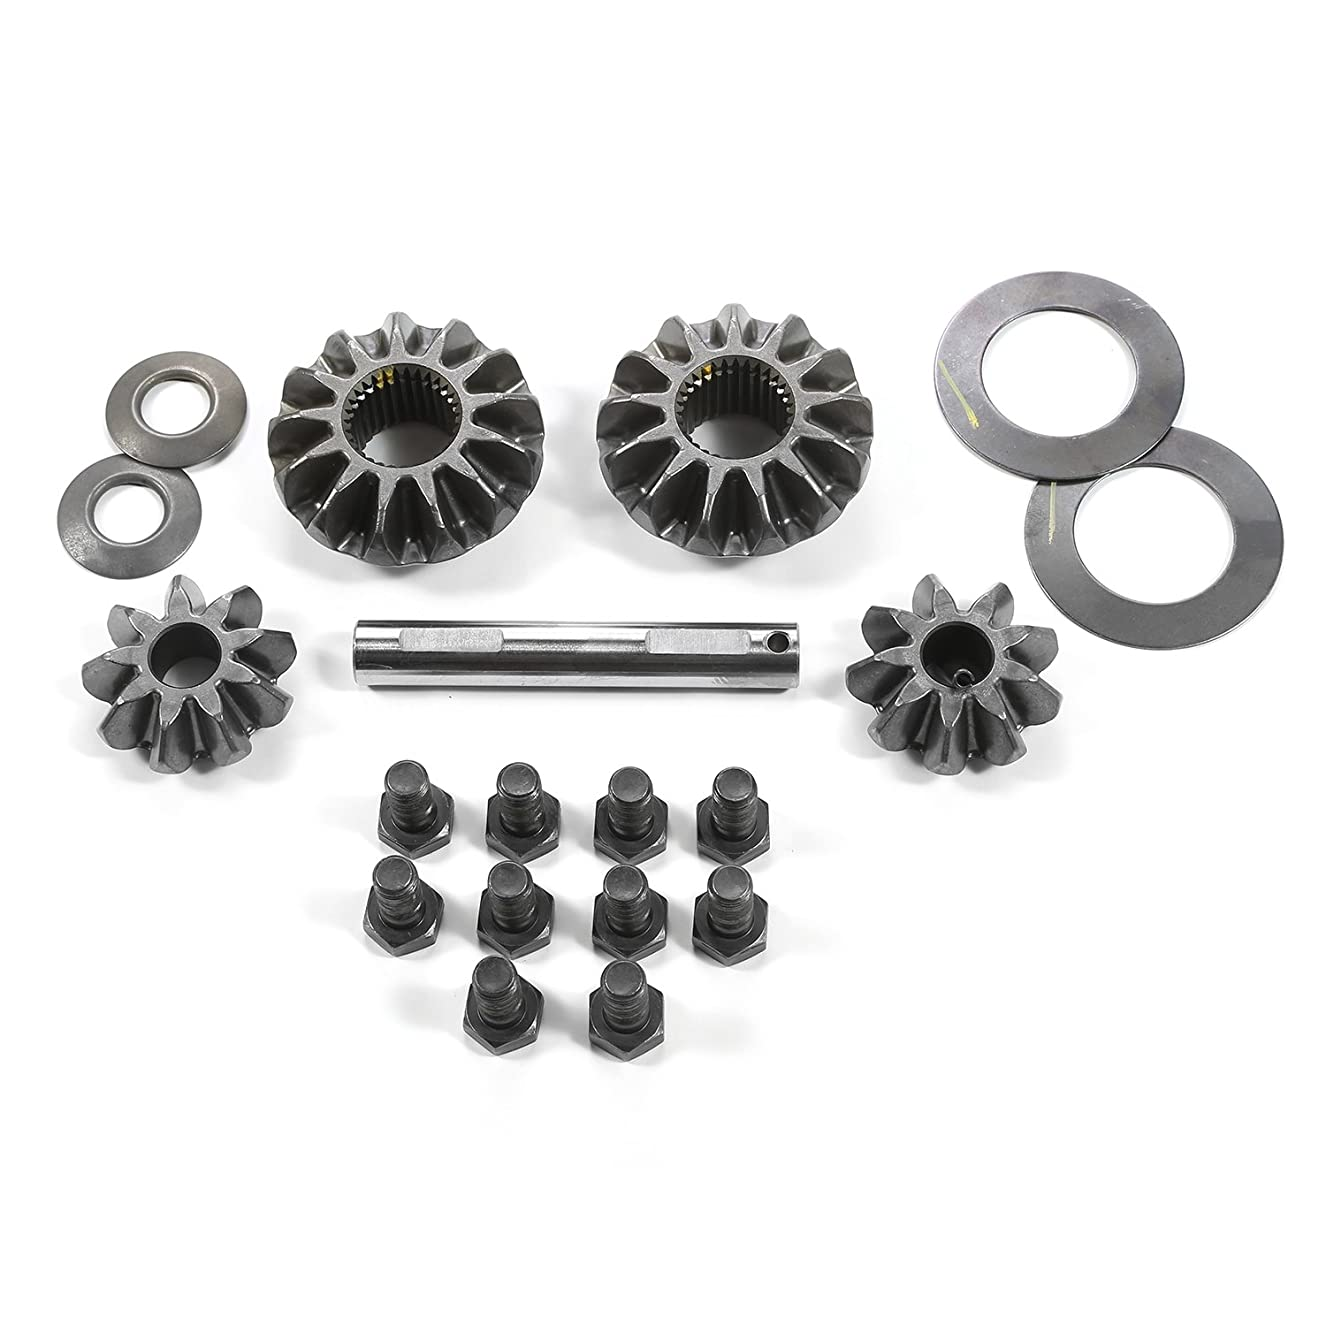 Omix-Ada 16507.43 Differential Spider Gear Set for Dana 44 Rear Axle zsgkqgasyw4957